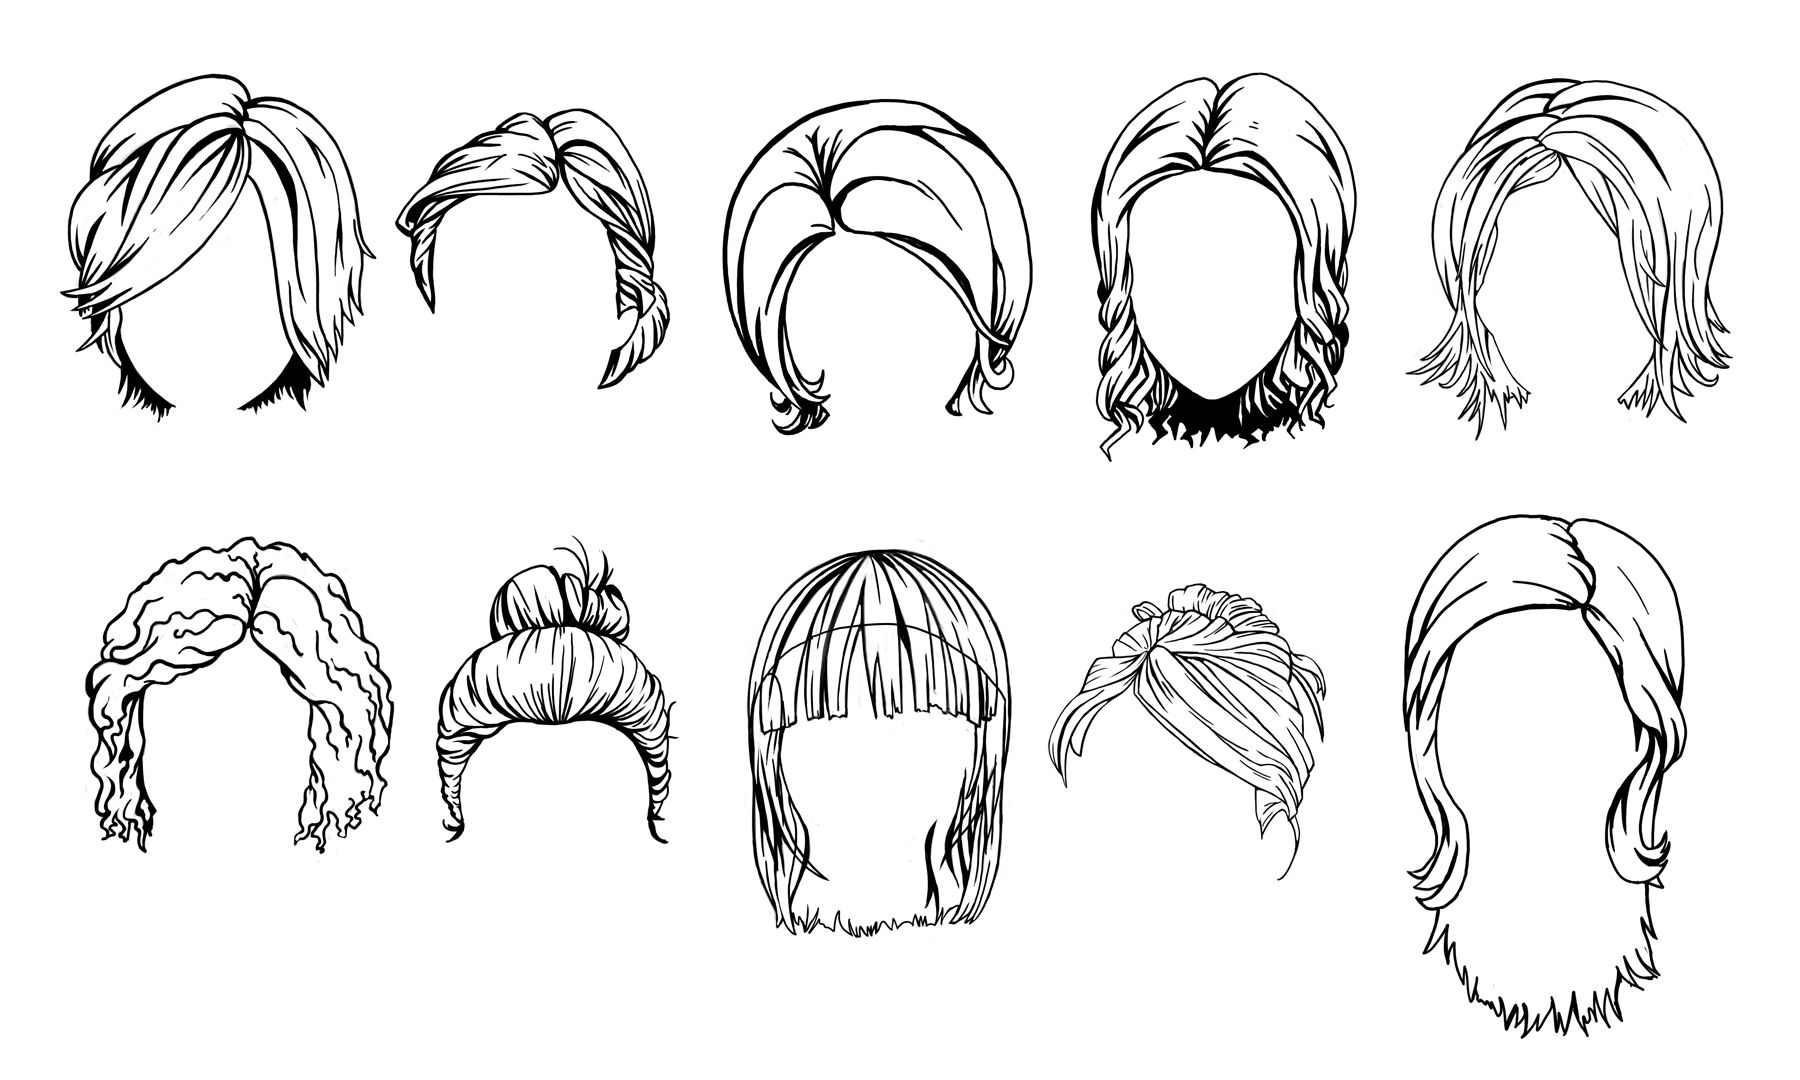 Hairstyle Sketches Http Www Tooncharacters Com How To Draw Hair Hair Sketch Fashion Illustration Hair